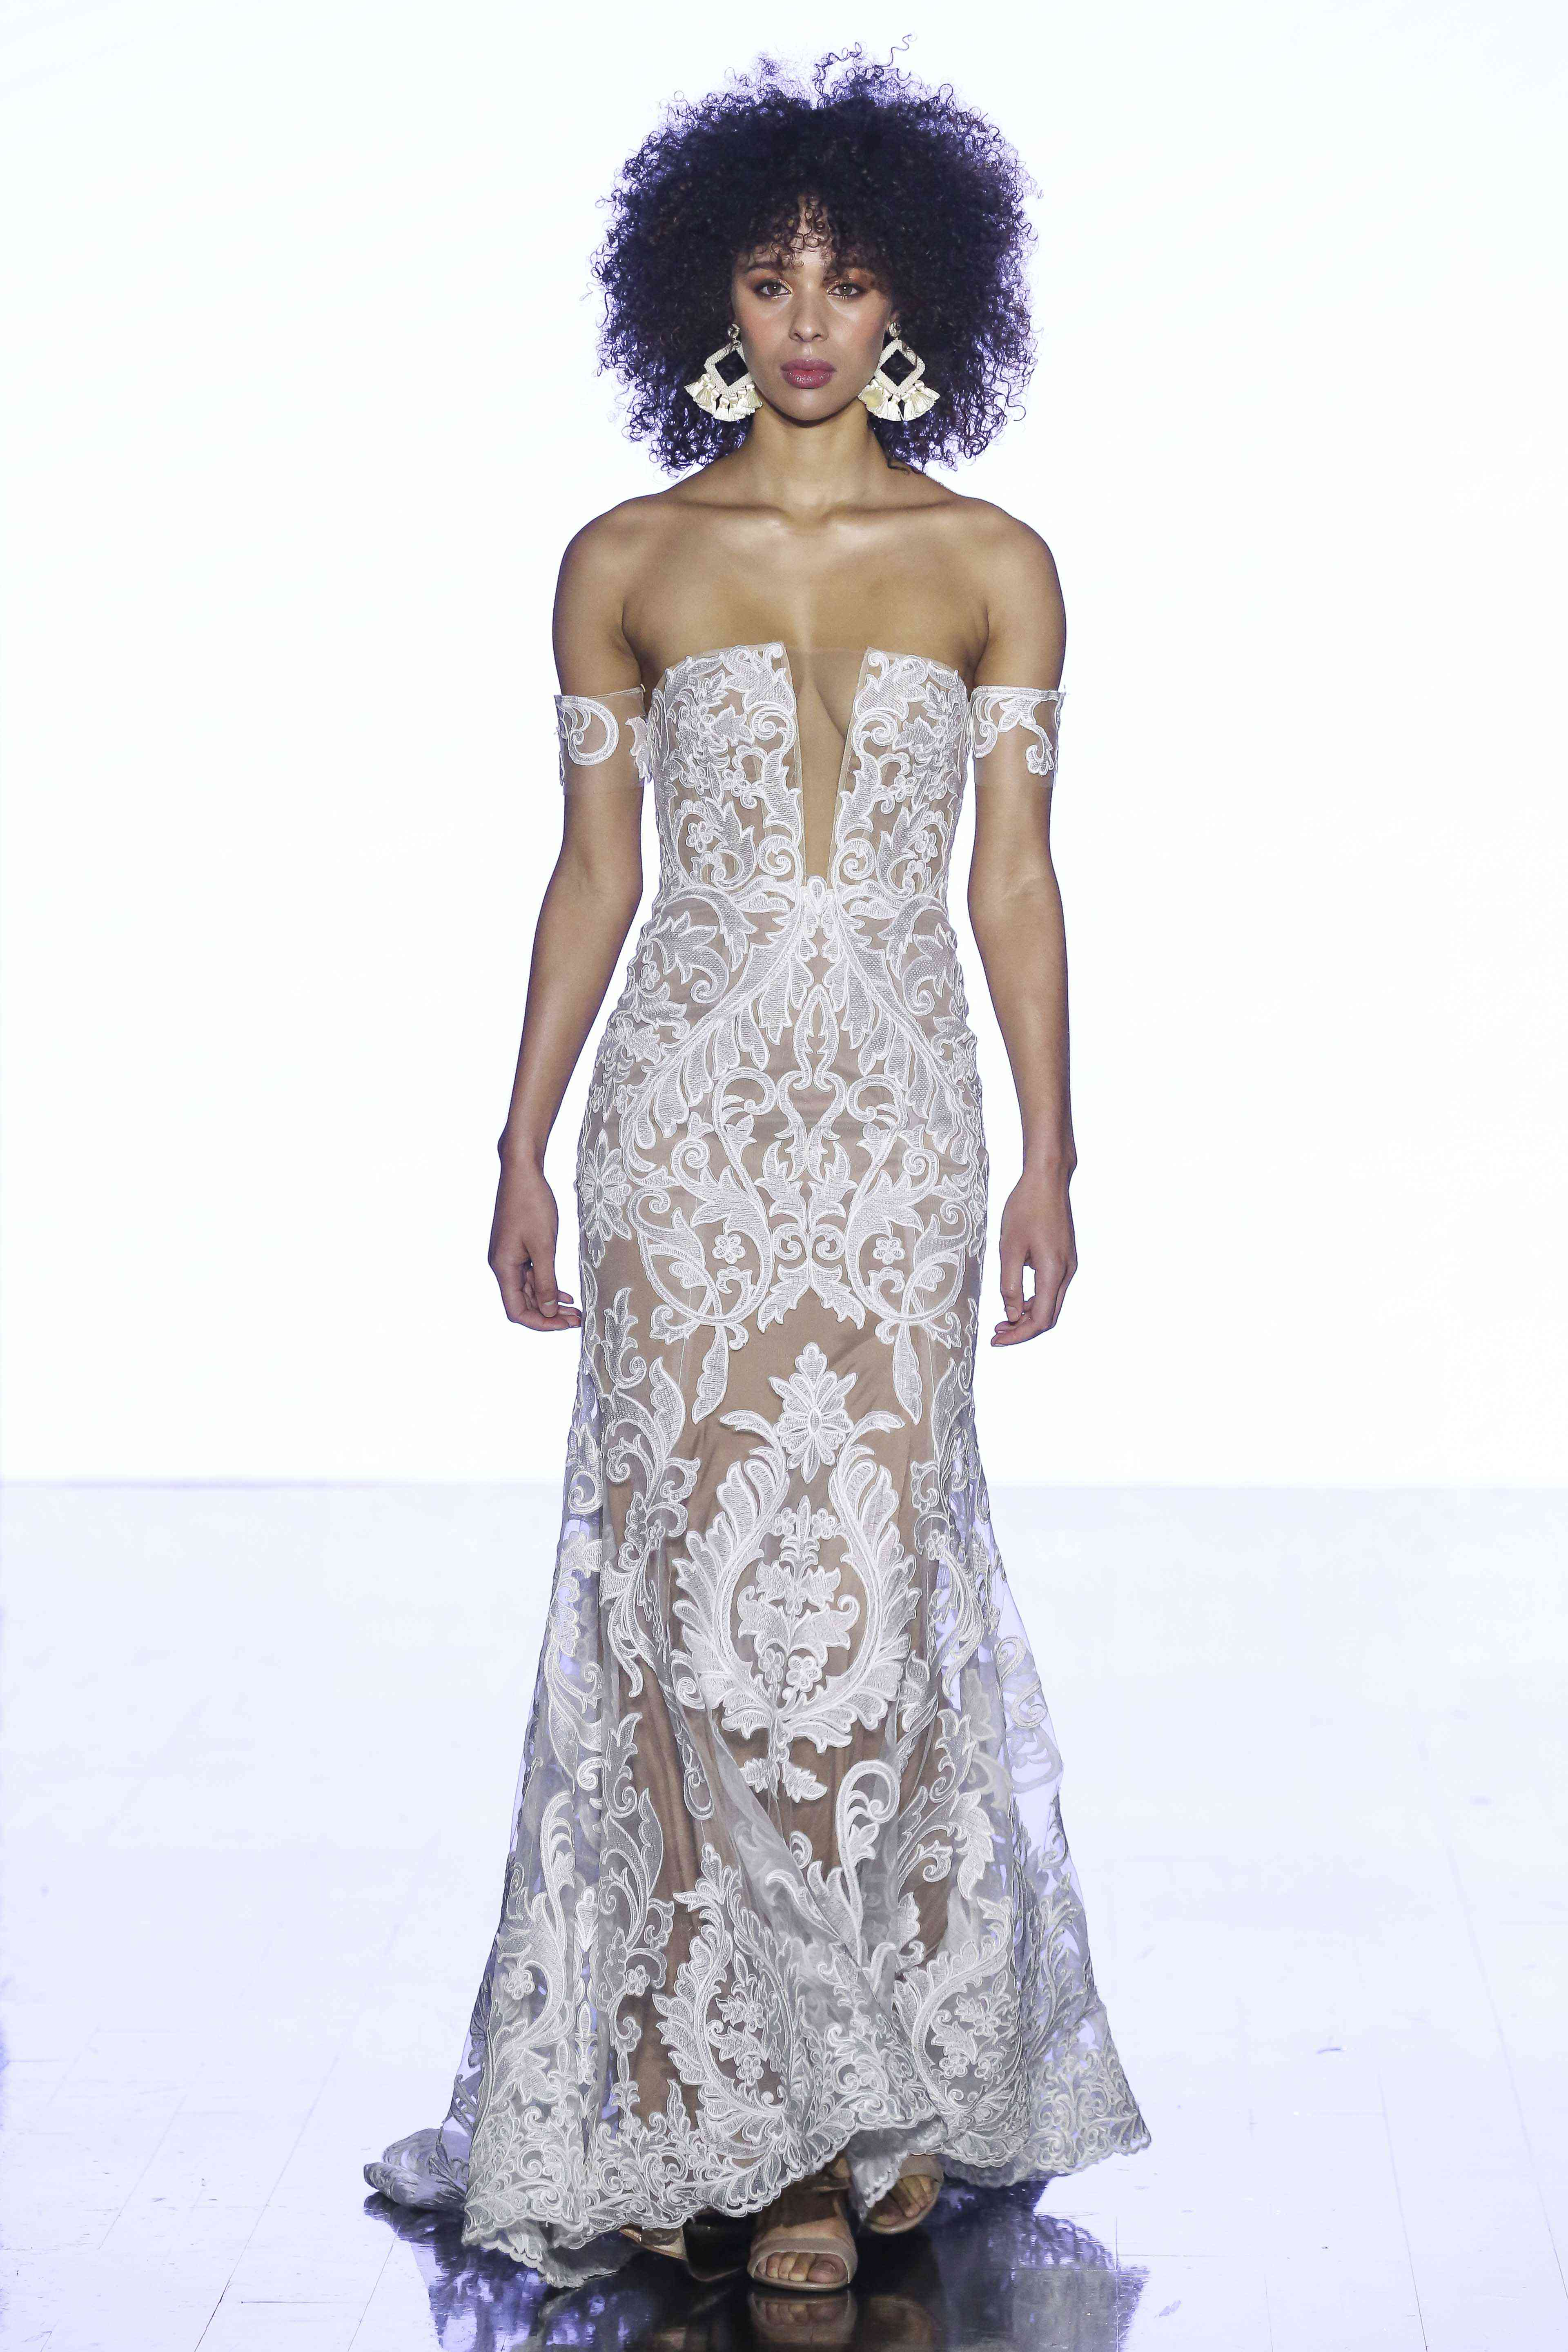 Model in allover lace sheath gown with a plunging illusion neckline and matching armbands